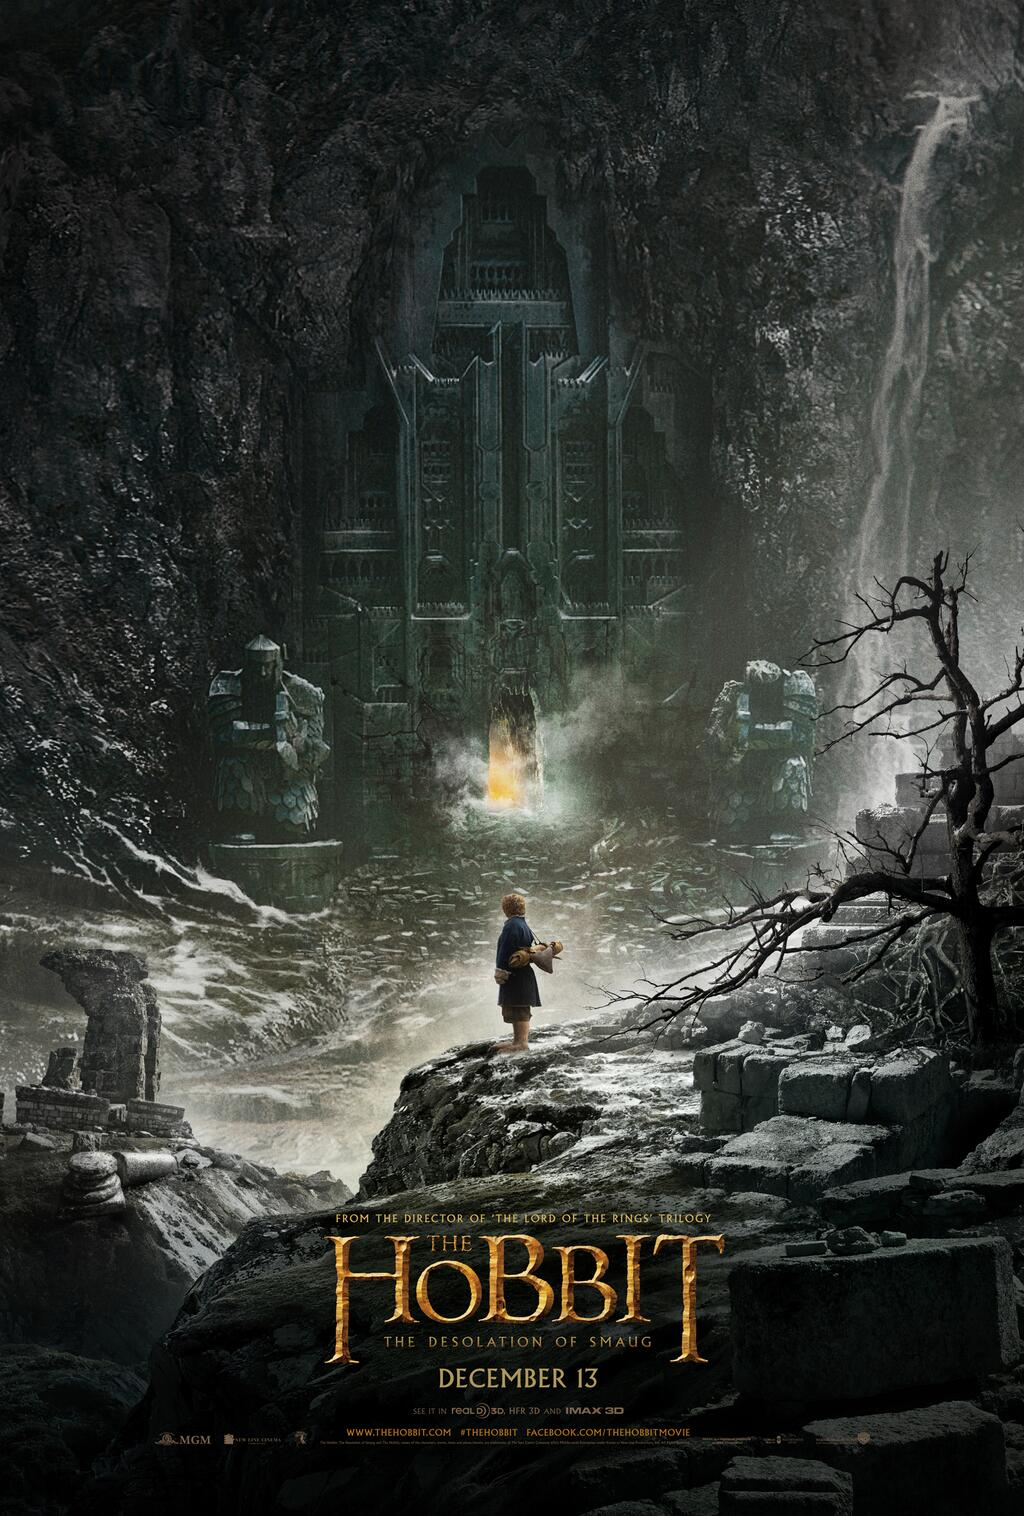 Fantastic New Trailer for The Hobbit: The Desolation of Smaug